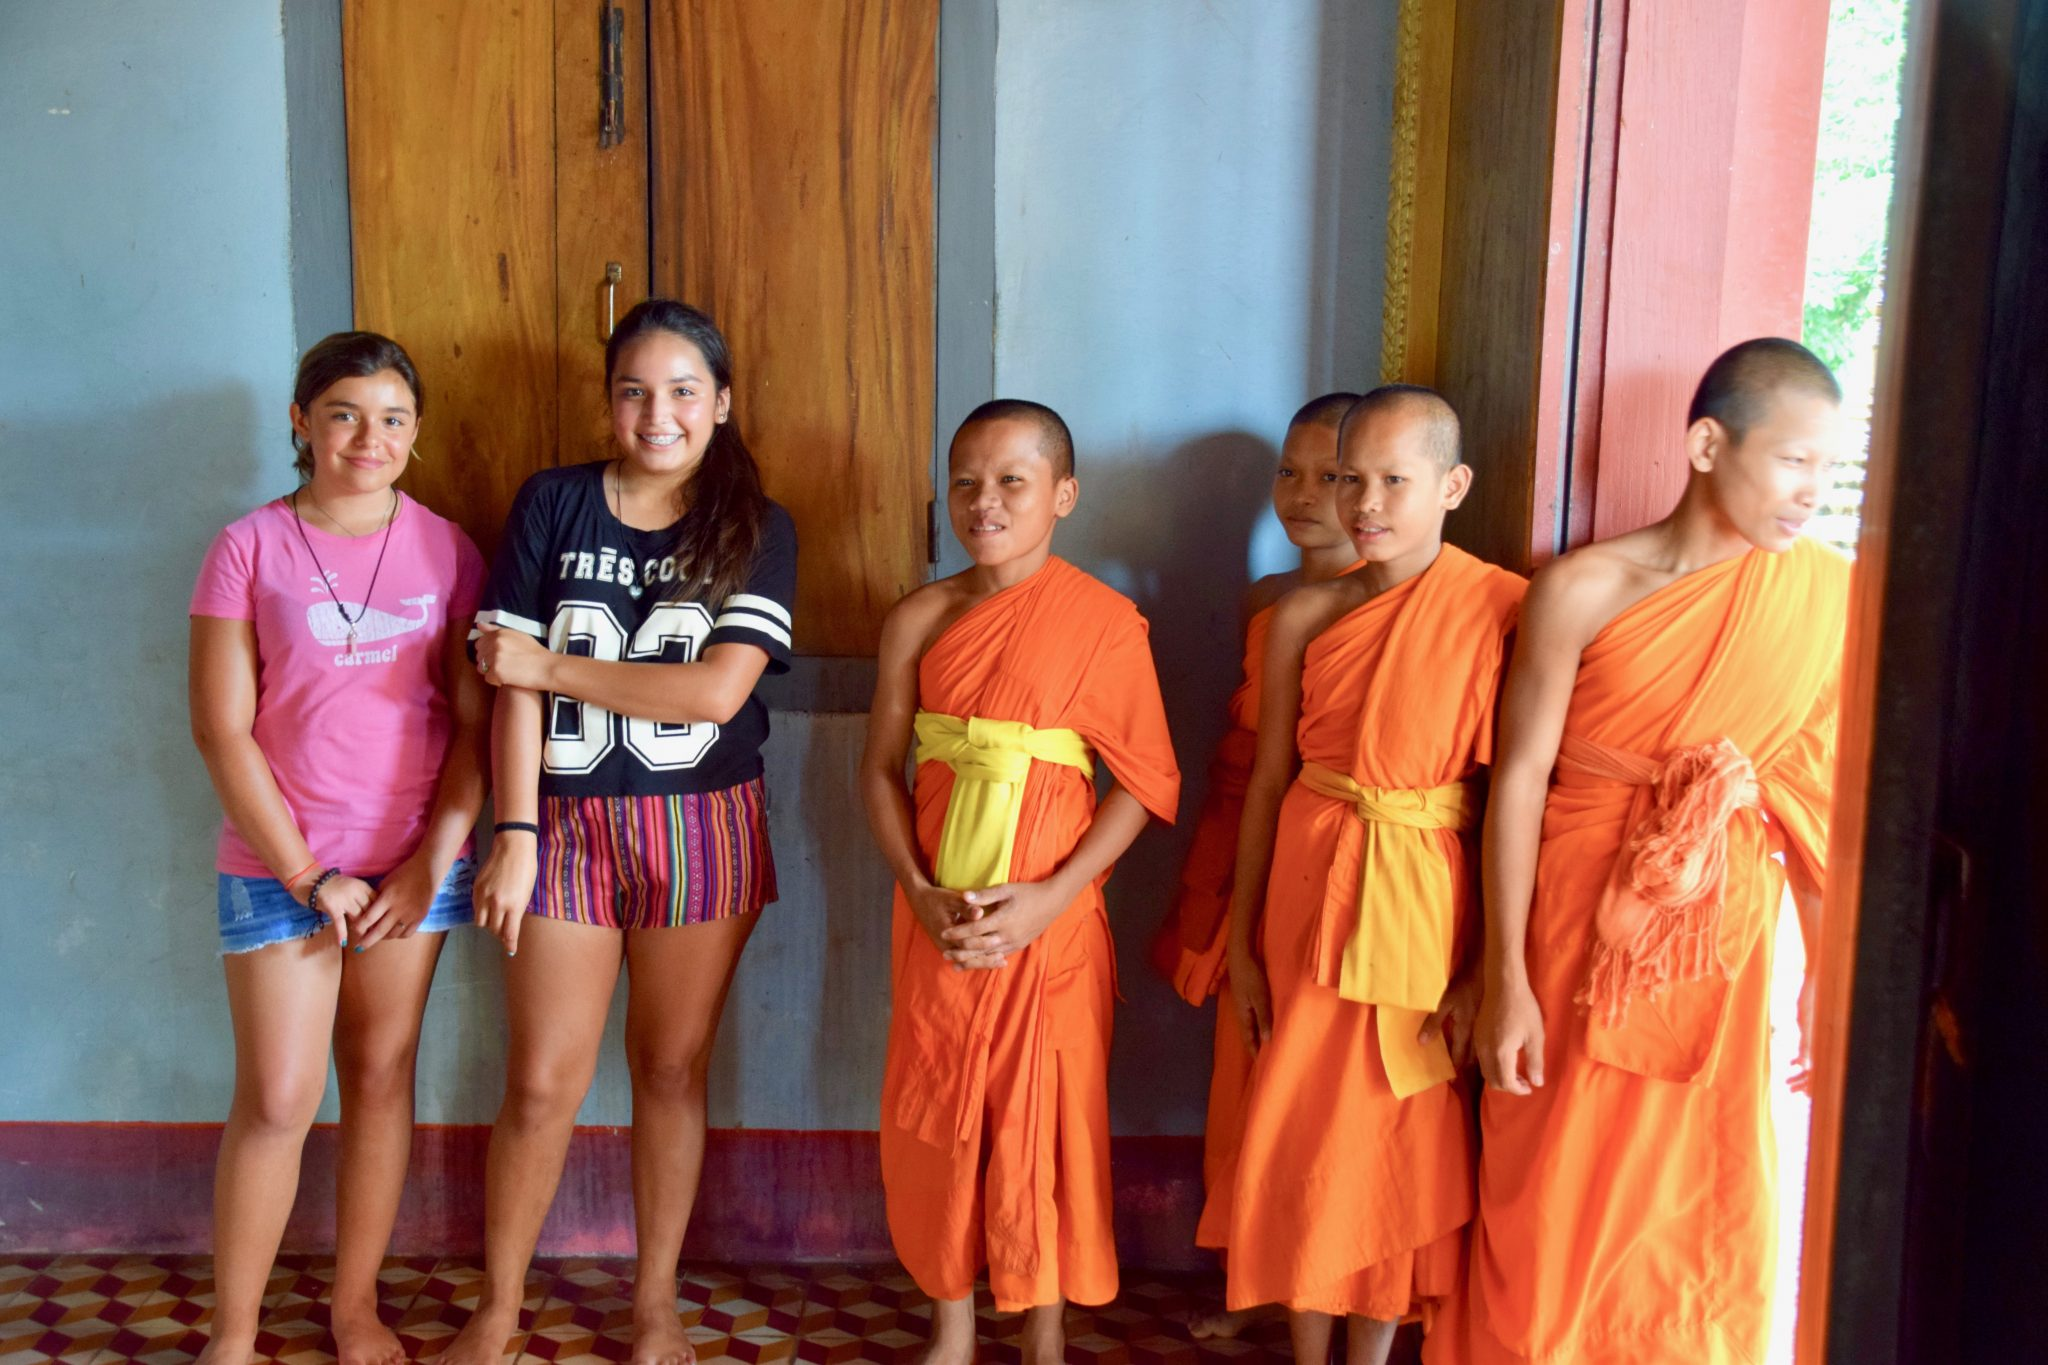 American girls pose with boys in training to become Buddhist Monks in Siem Reap, Cambodia